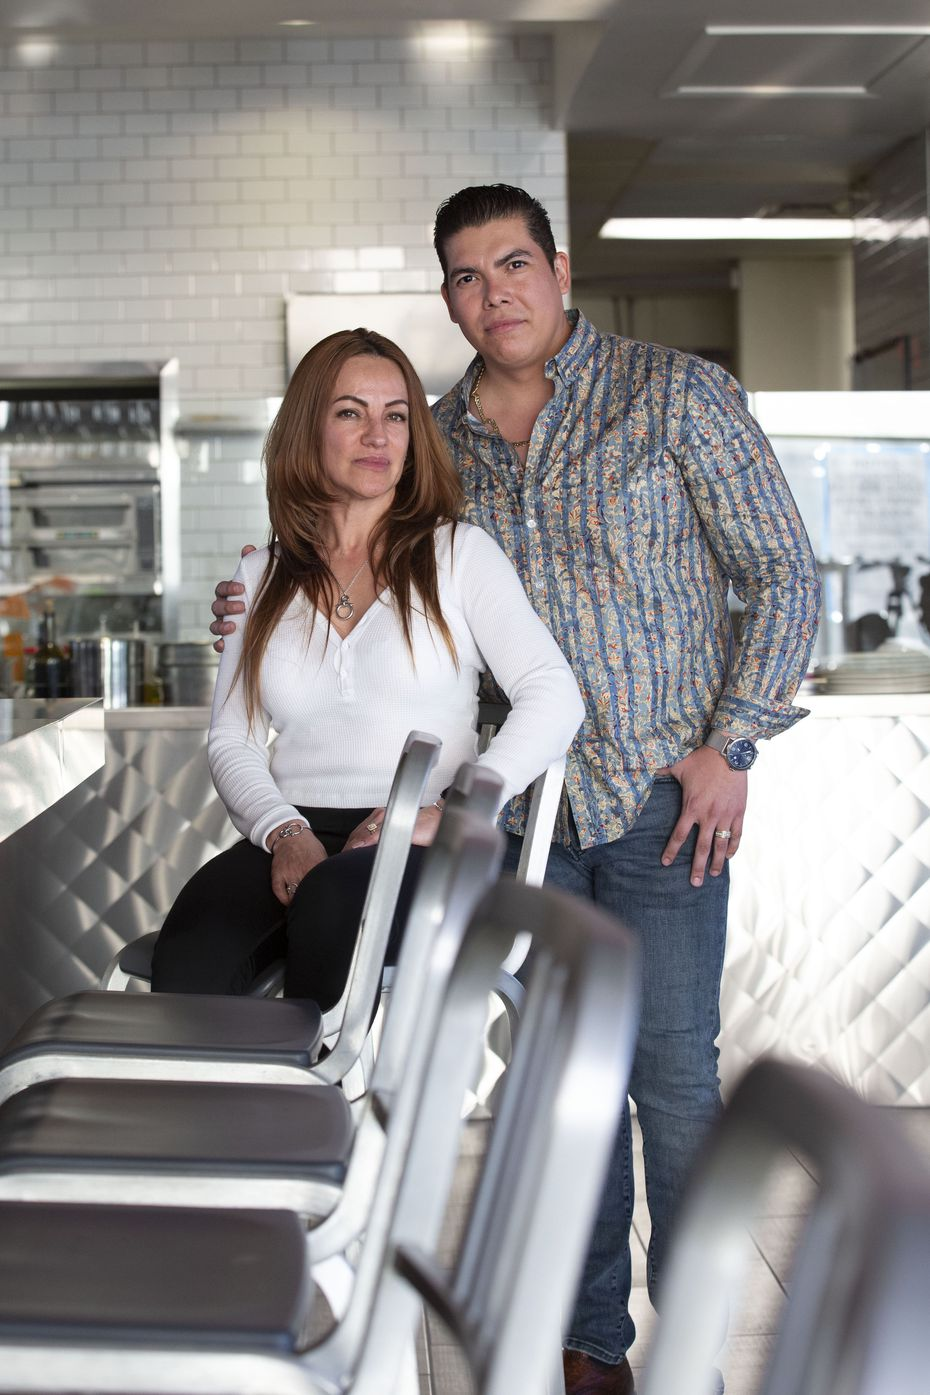 Mayra Orozco (left) and husband Sixto Alvarado are shown in their new restaurant Caribbean's Shark Seafood in Dallas.